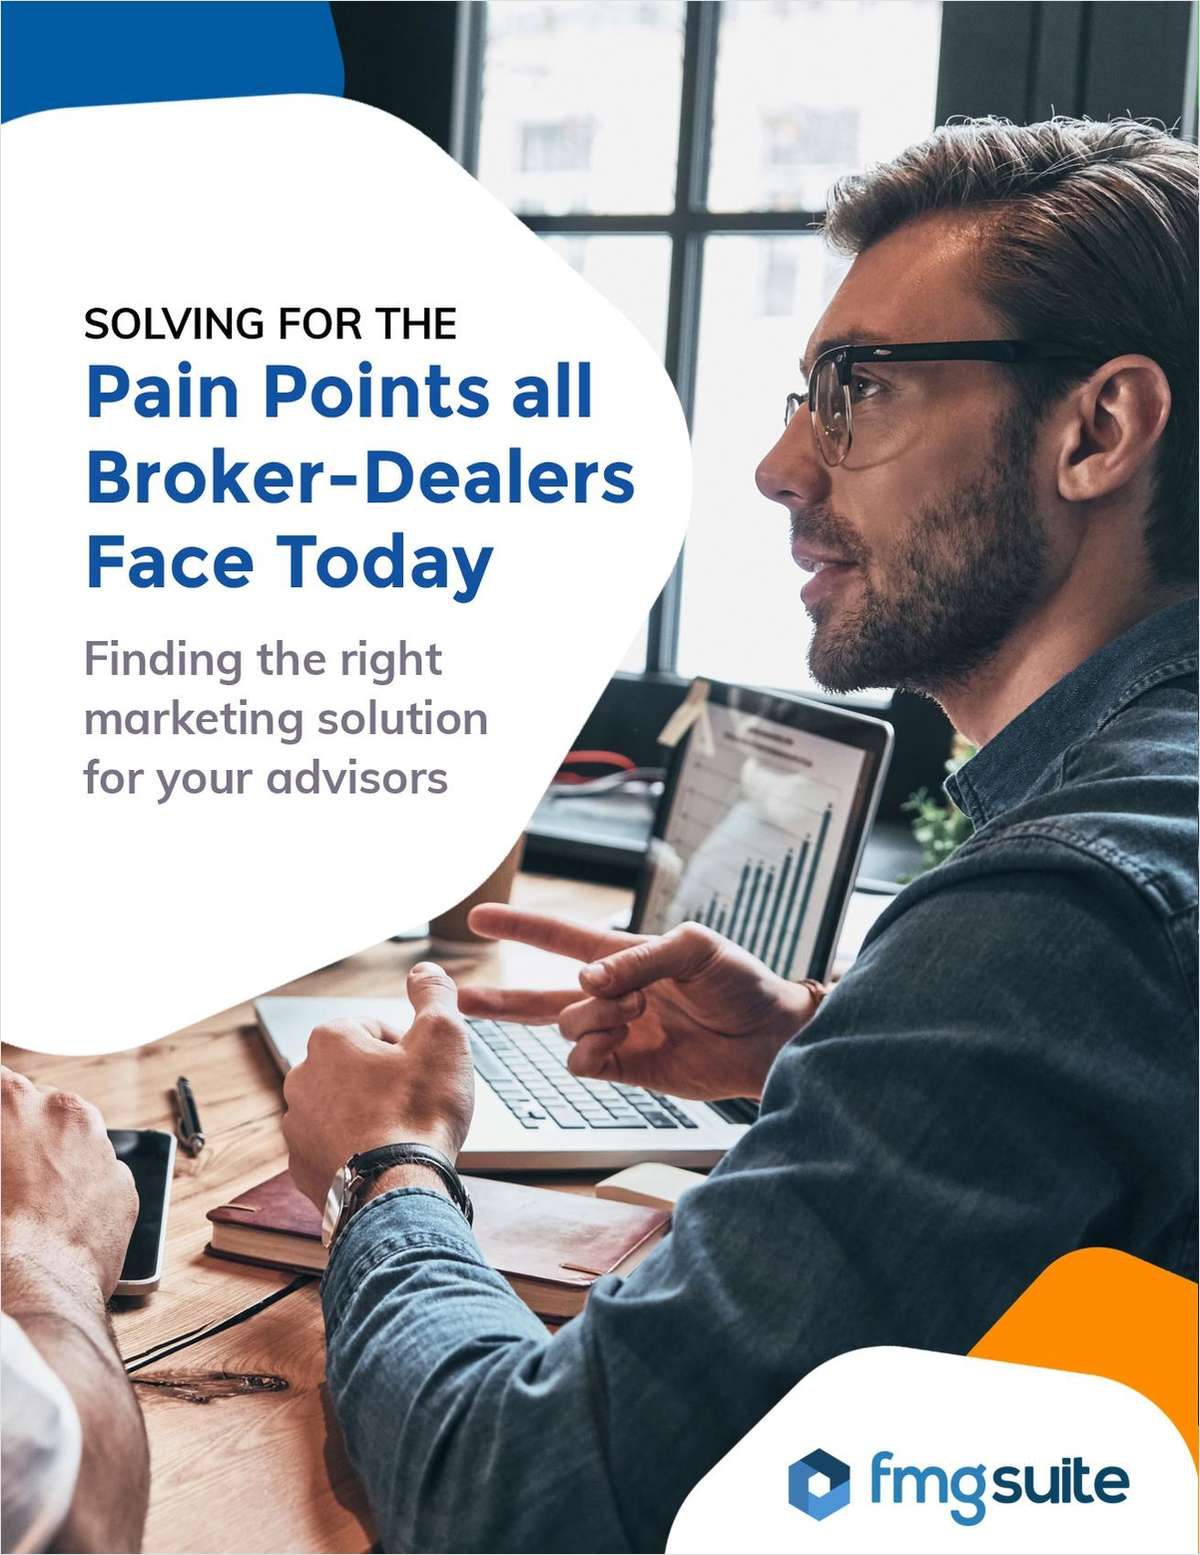 Solving for the Pain Points Broker-Dealers Face Today